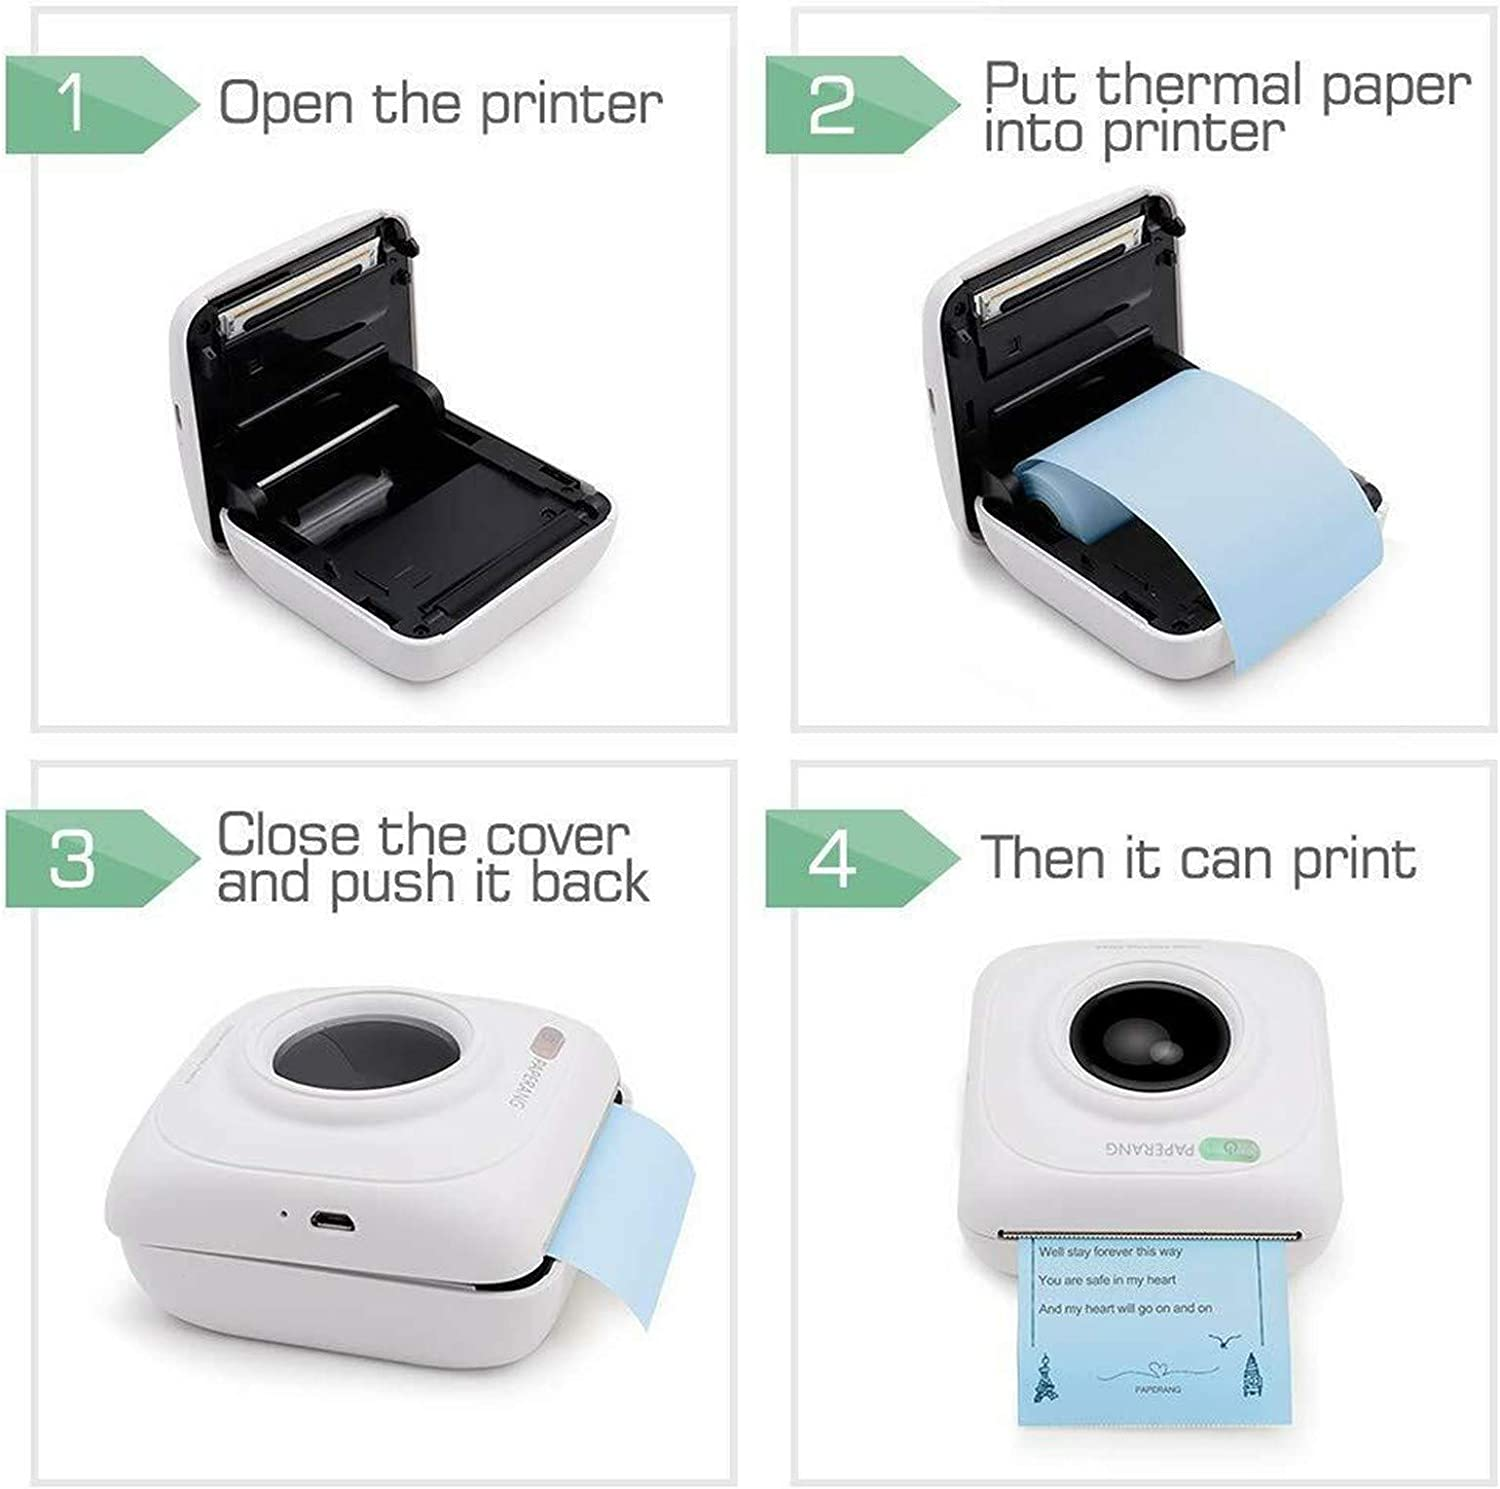 58mm Wireless POS Photo Printer Thermal Bluetooth Label Printer with 6 Printing Papers Portable Smart Photo Printer for All Smartphone Pocket Printer Mini Printer for iPhone